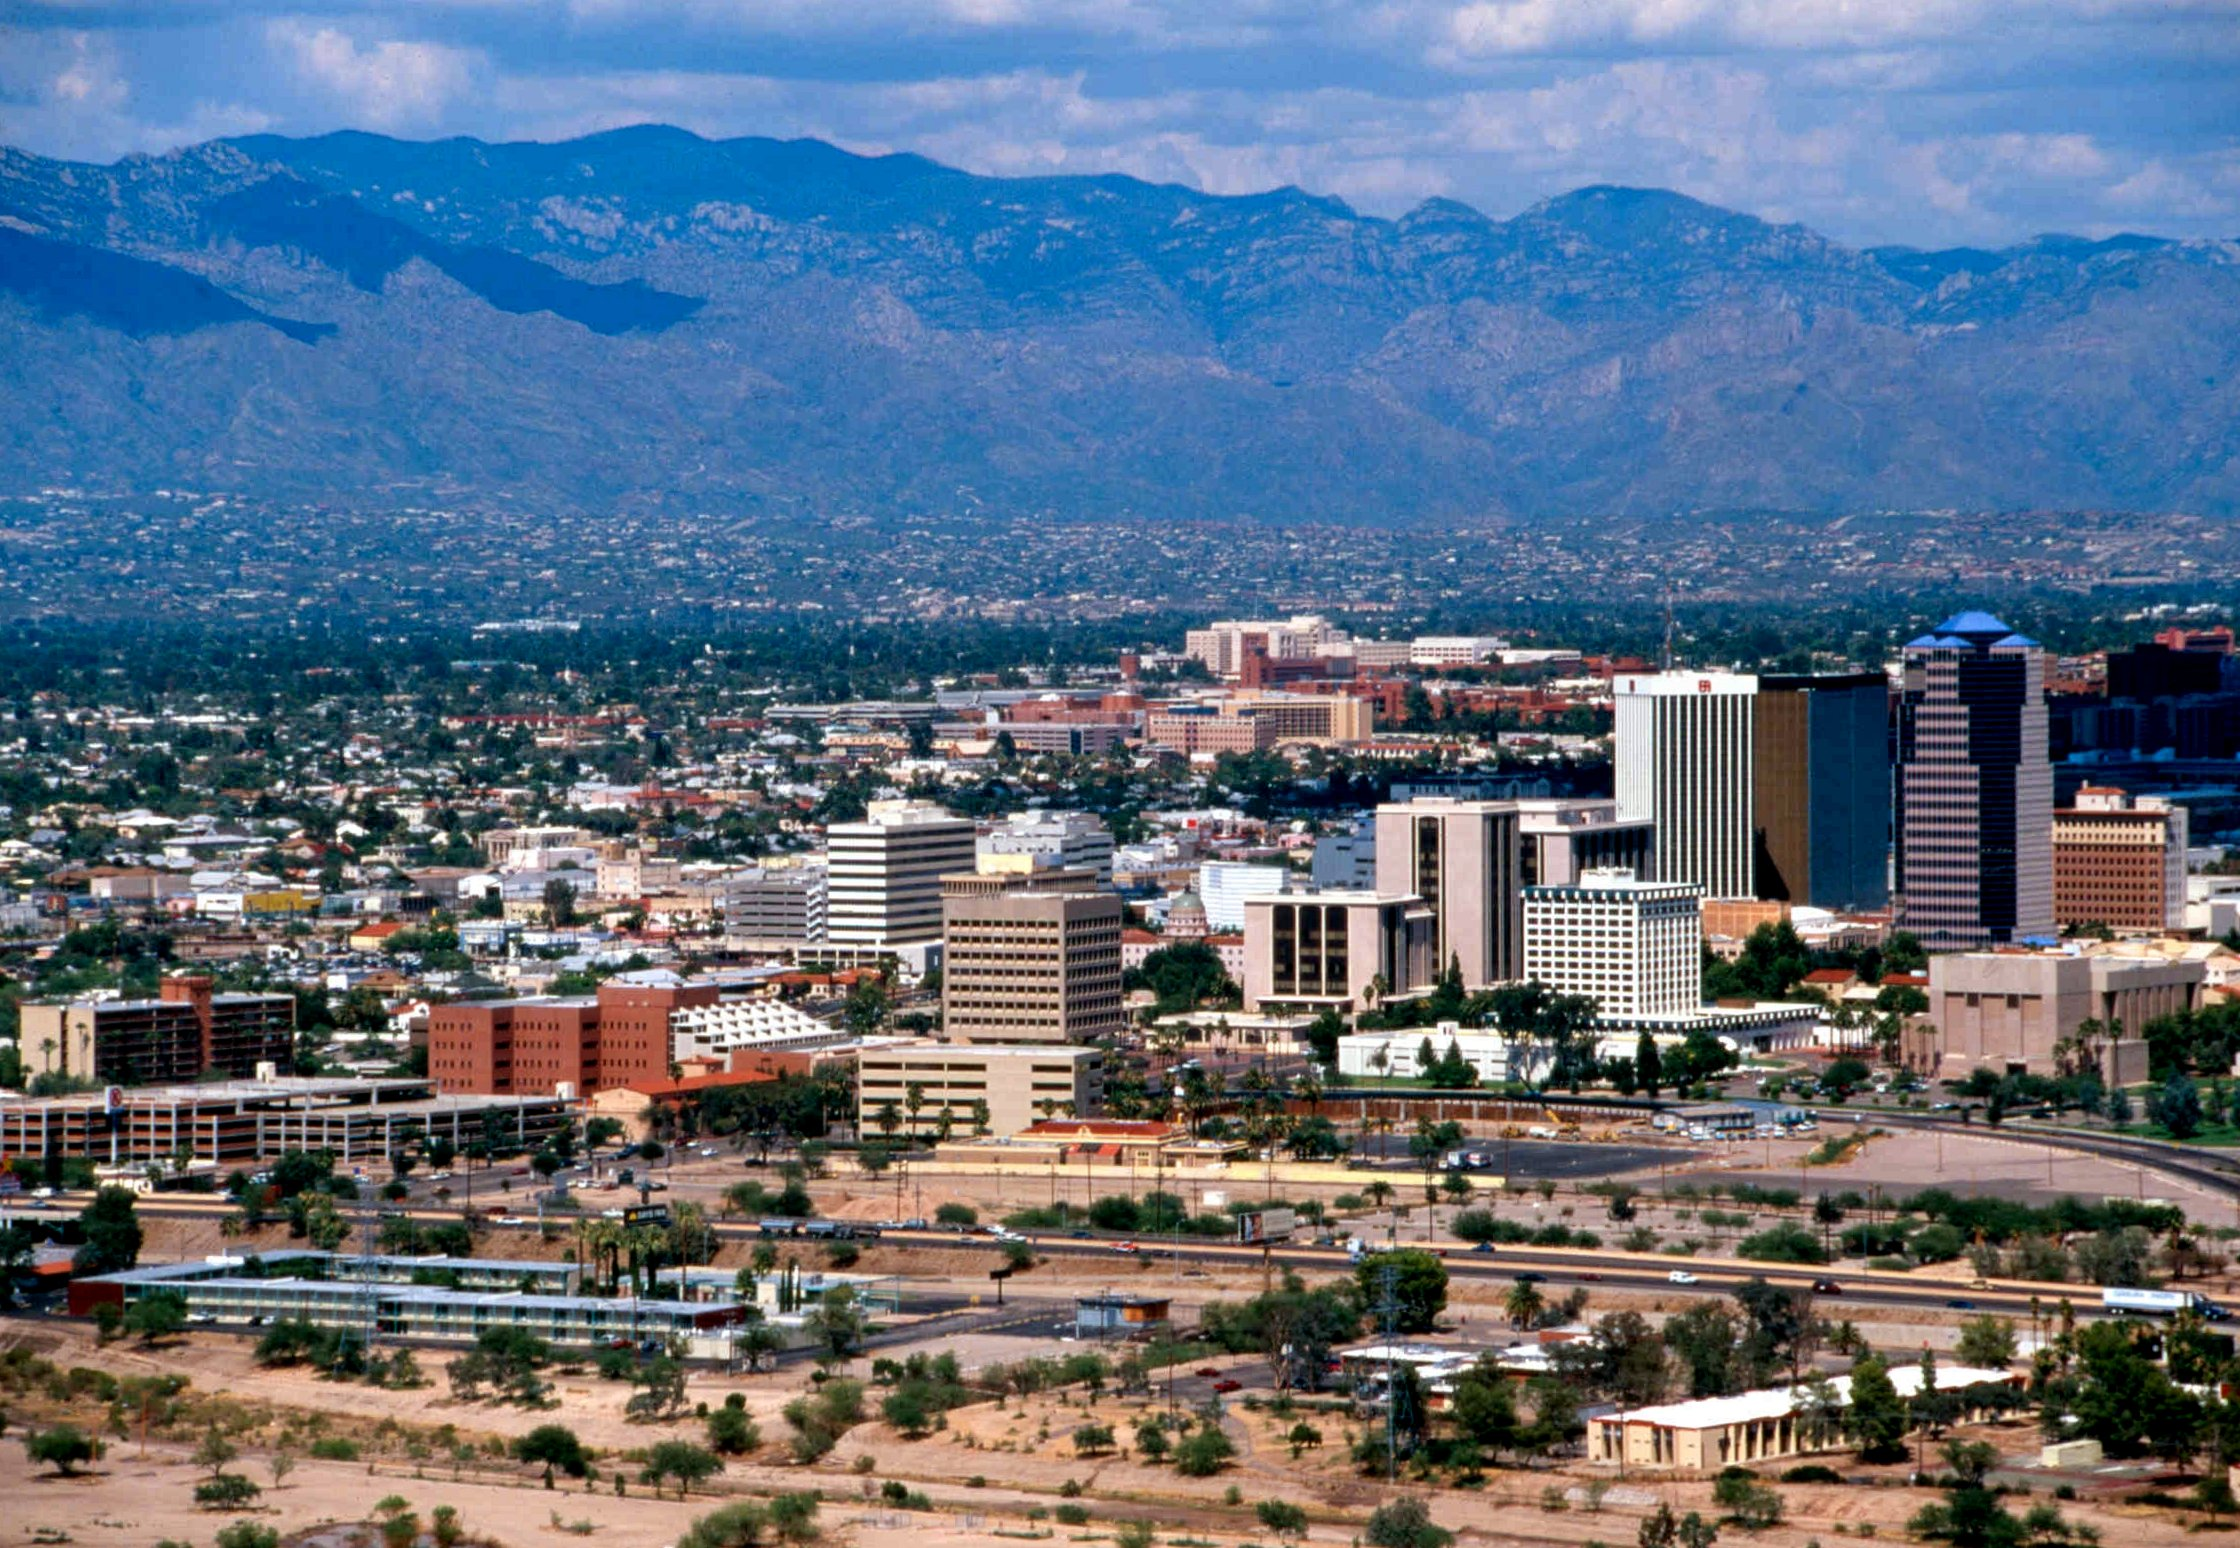 Tucson Or Phoenix Hotel With Fireplace Spa Room Service